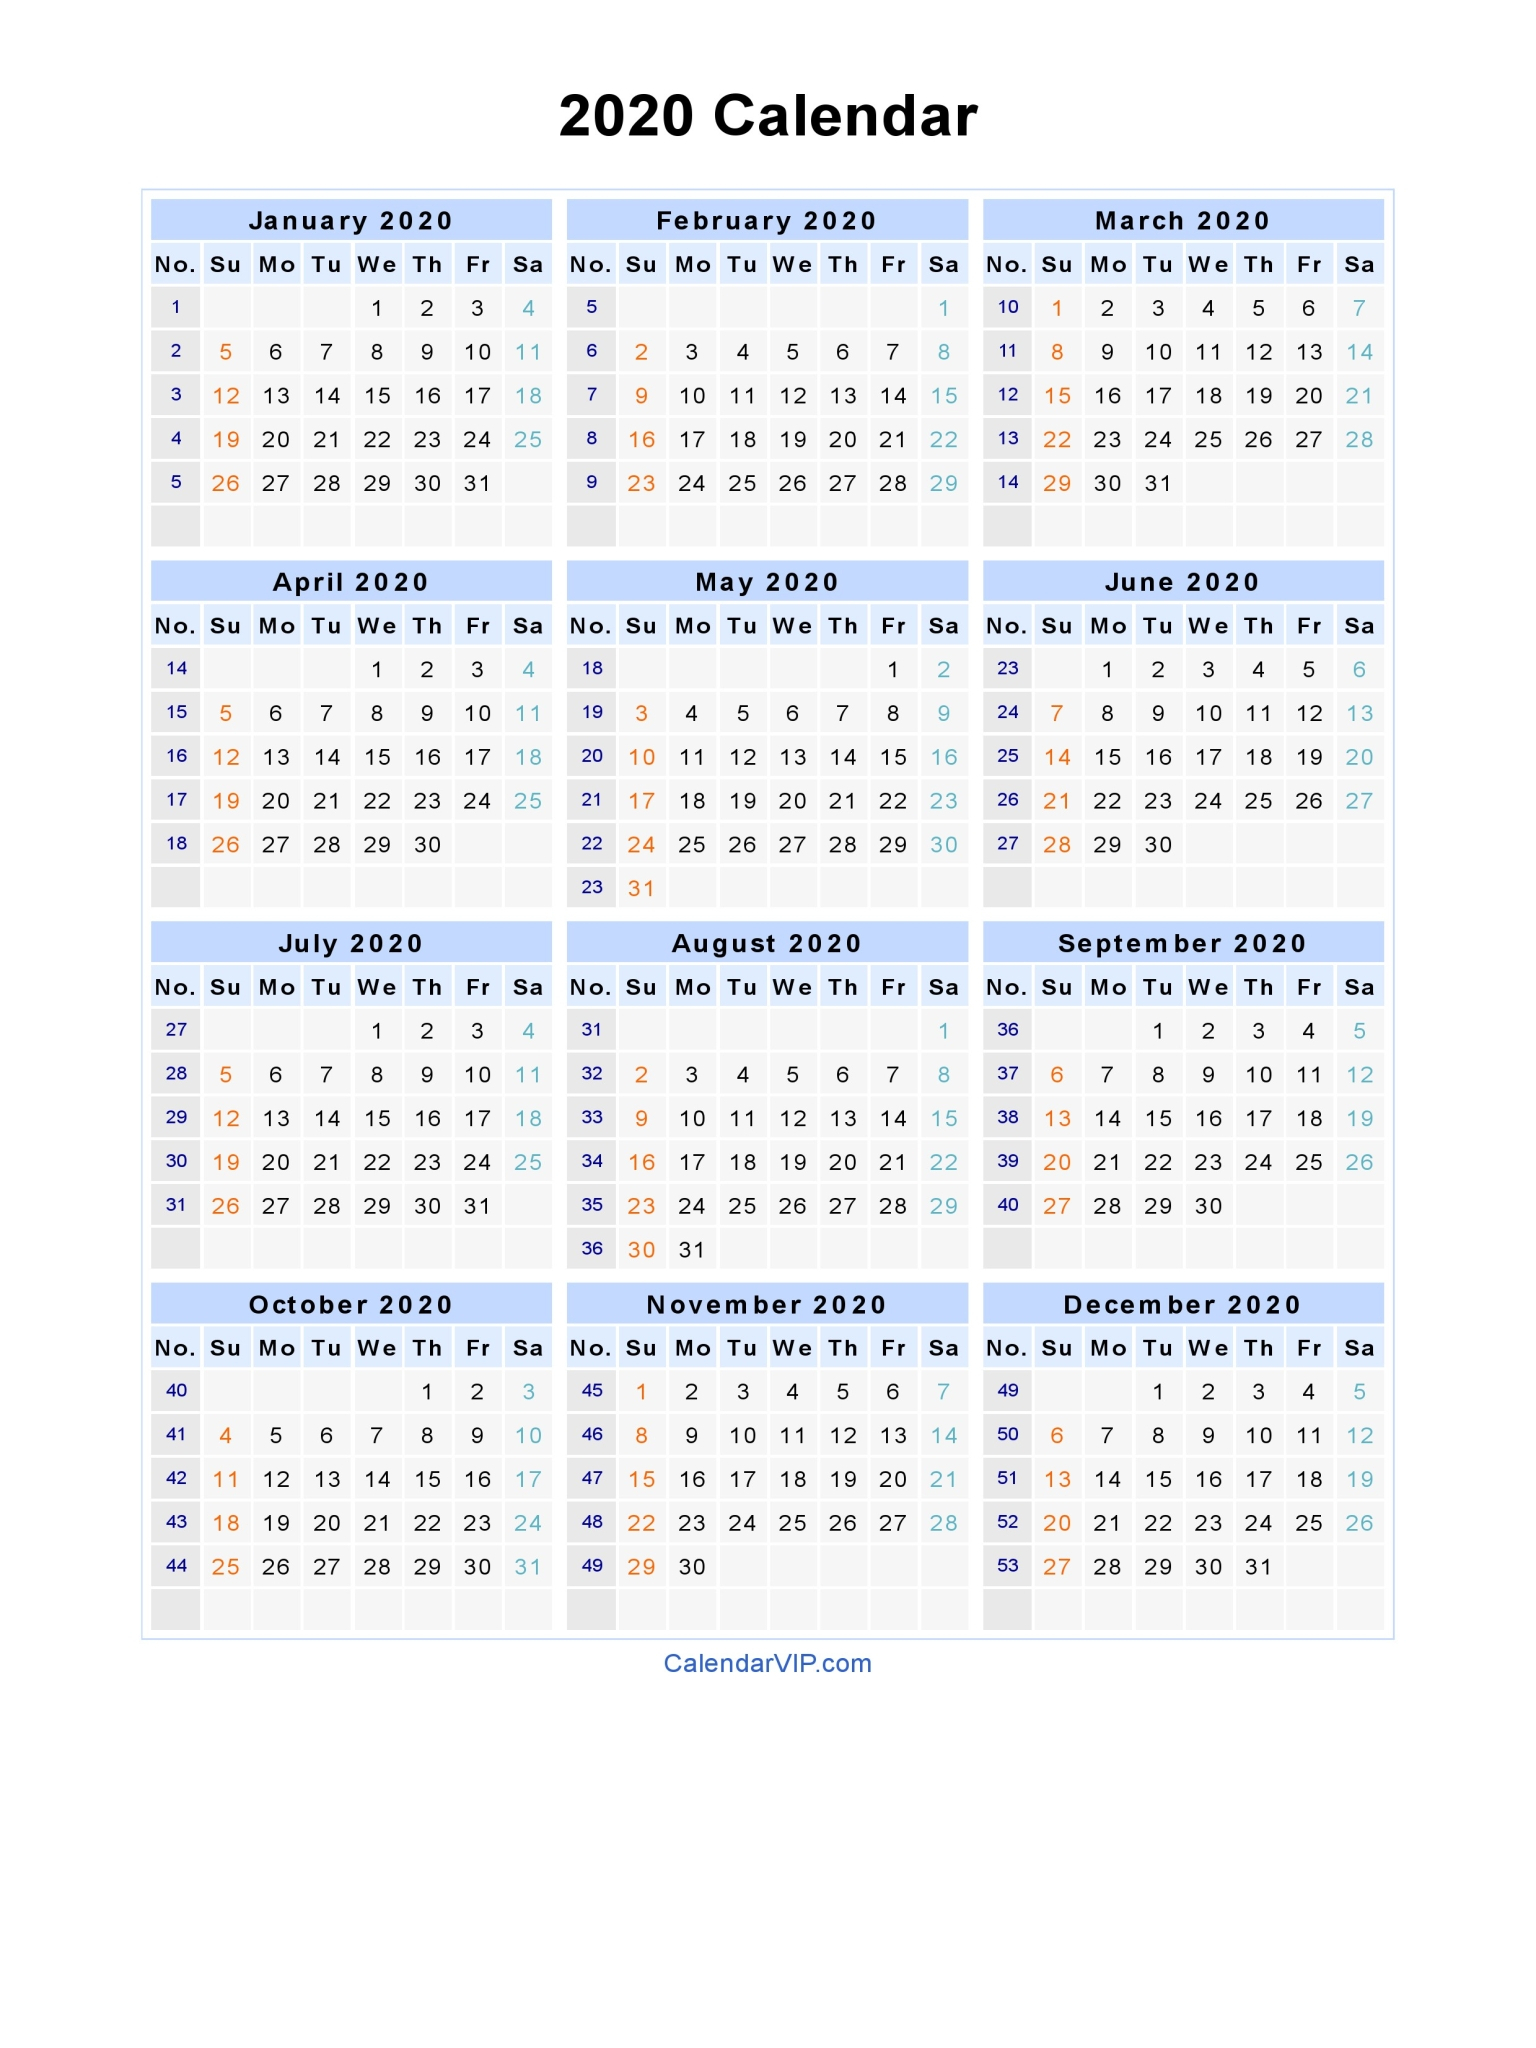 2020 Calendar - Blank Printable Calendar Template In Pdf Word Excel with 2020 Calendar With Week Numbers In Excel